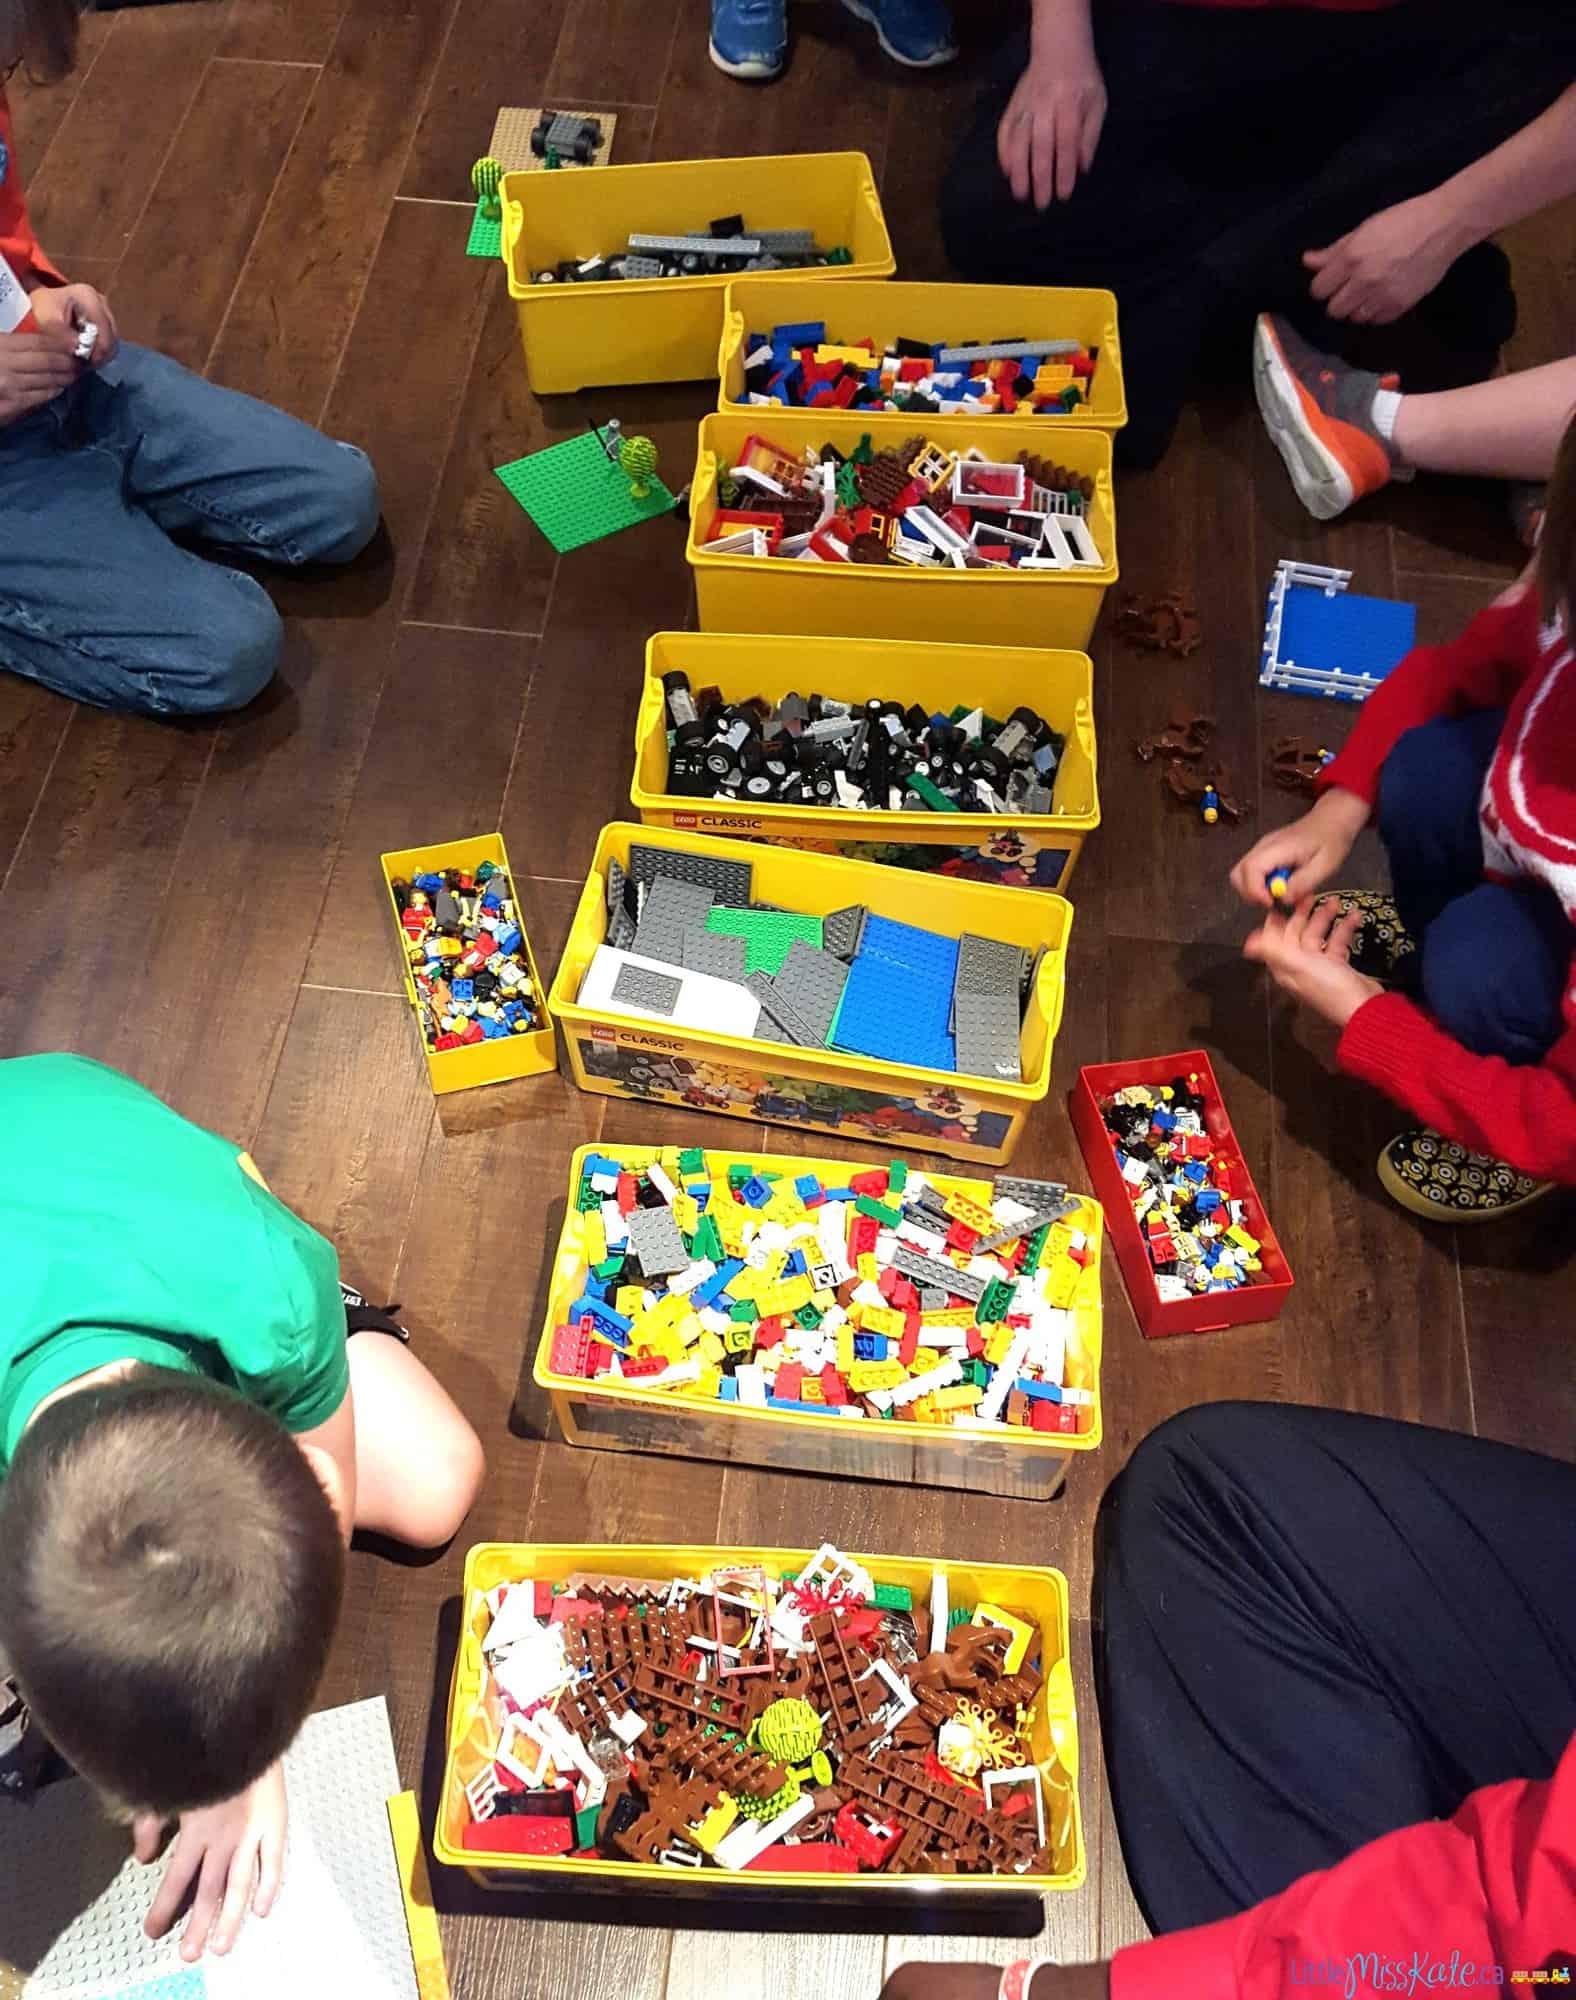 kids-n-bricks-lego-birthday-party-ideas--in-home-brithday-party-entertainment-02